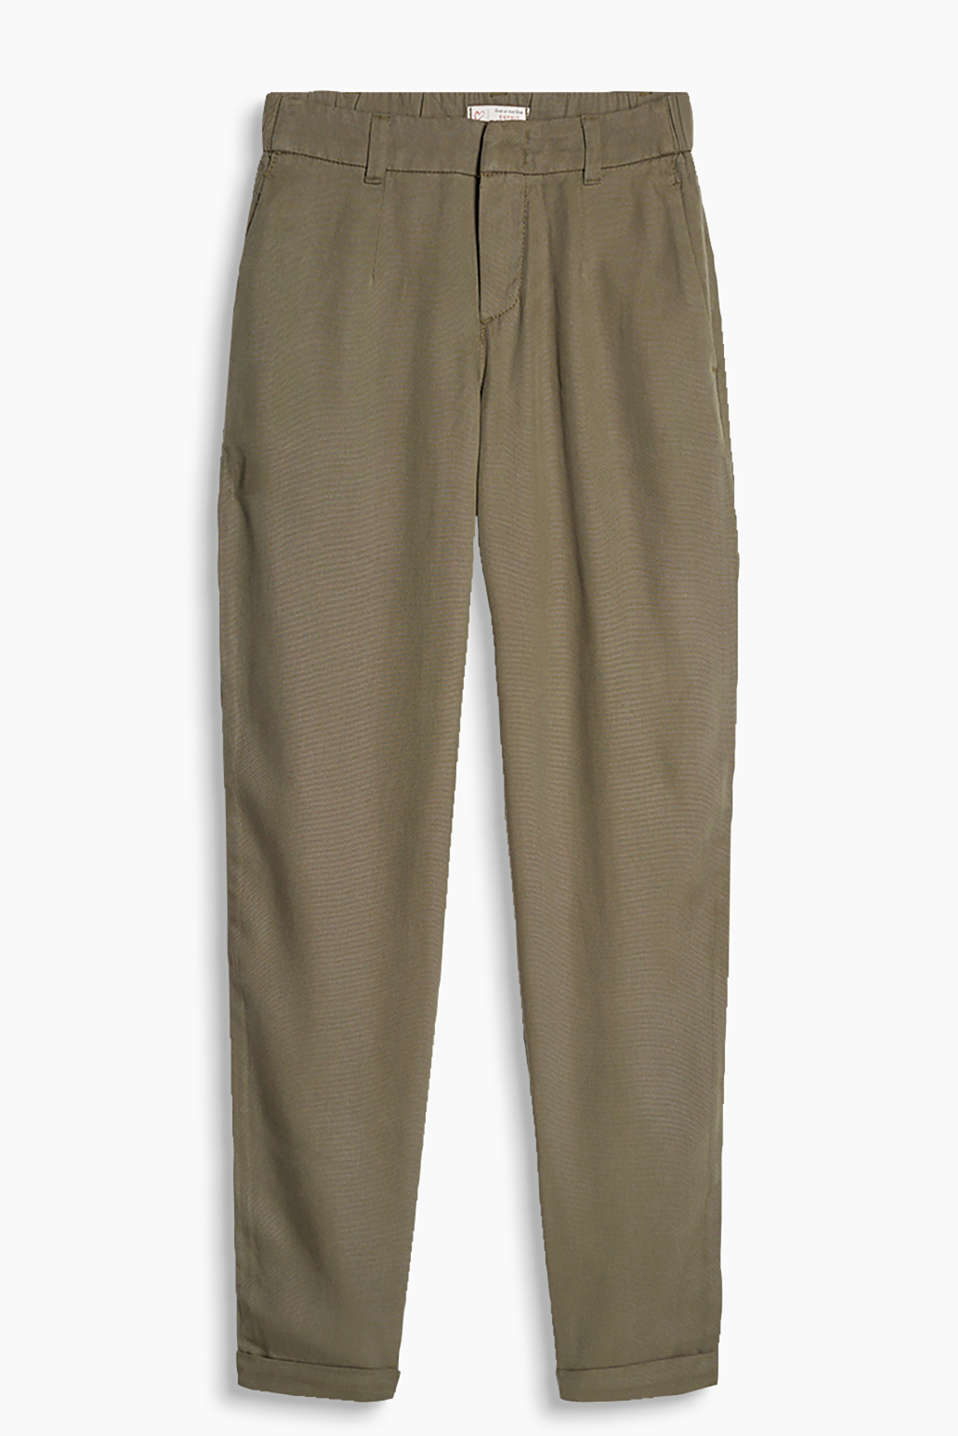 Flowing chinos with a fine texture and a comfortable elasticated waistband